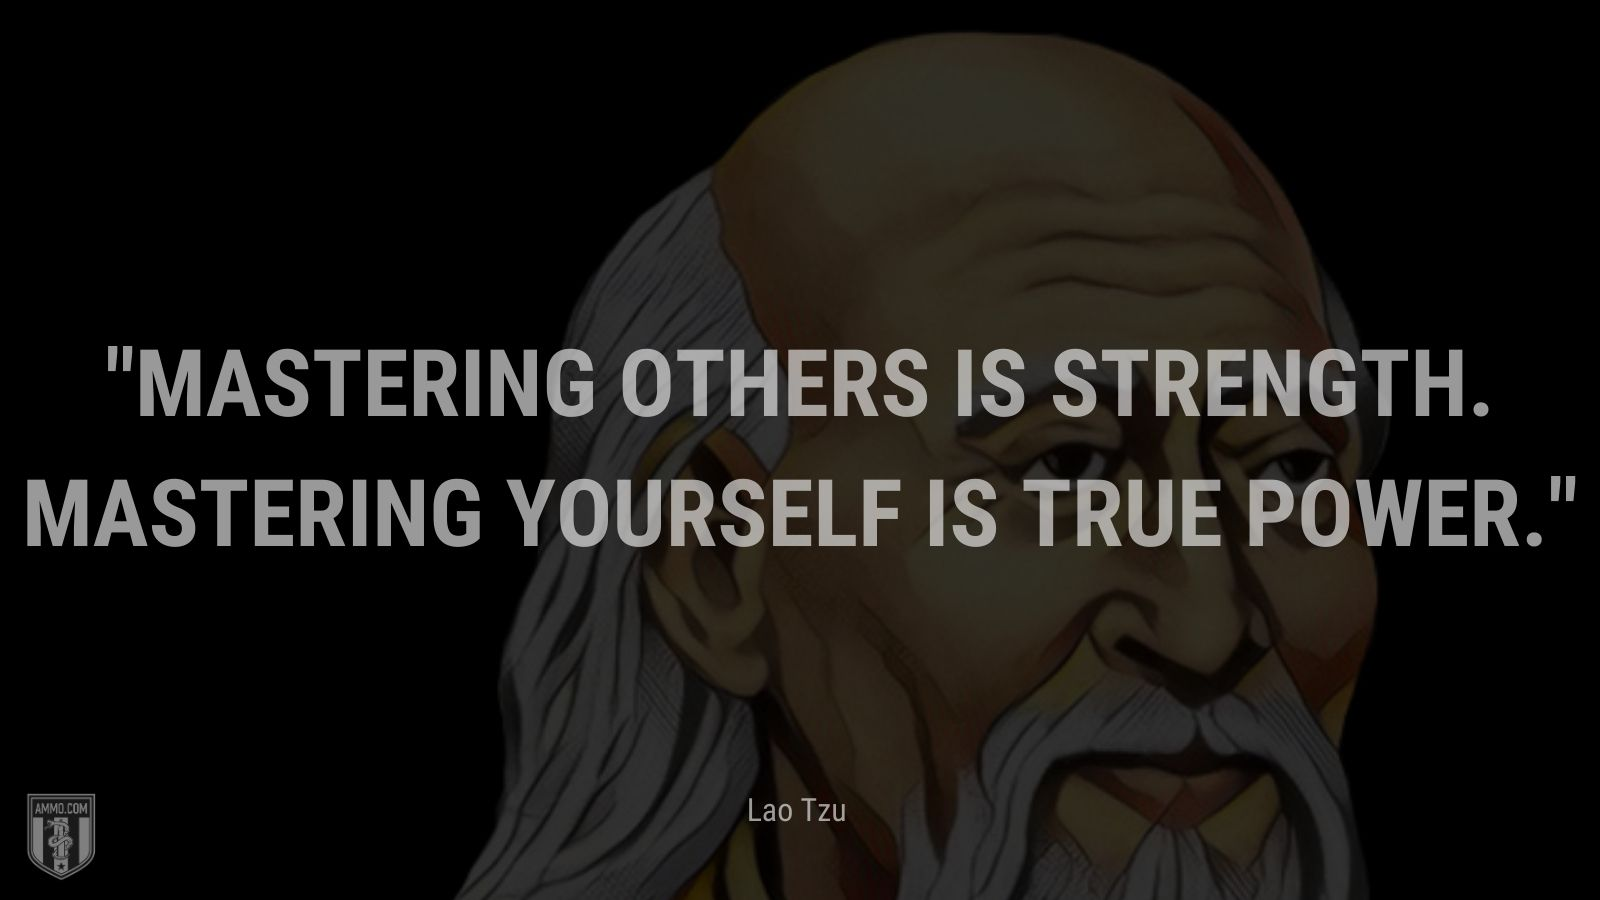 """""""Mastering others is strength. Mastering yourself is true power. - Lao Tzu"""